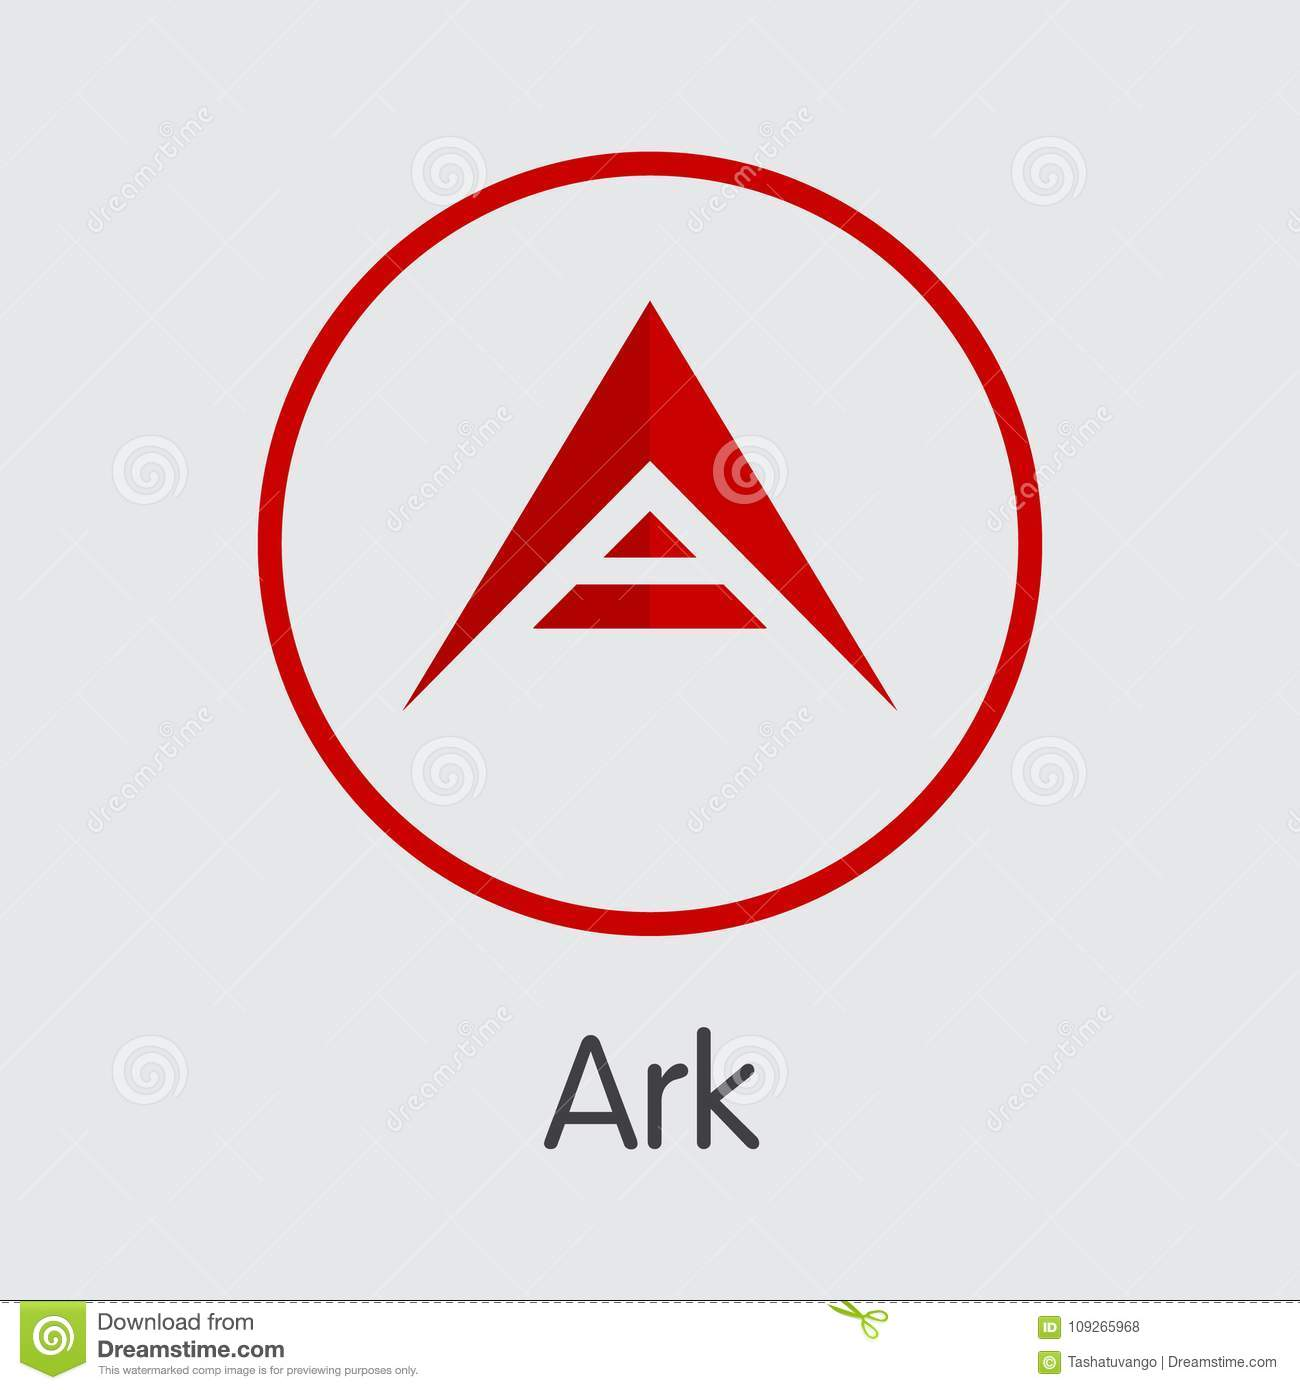 buy ark cryptocurrency